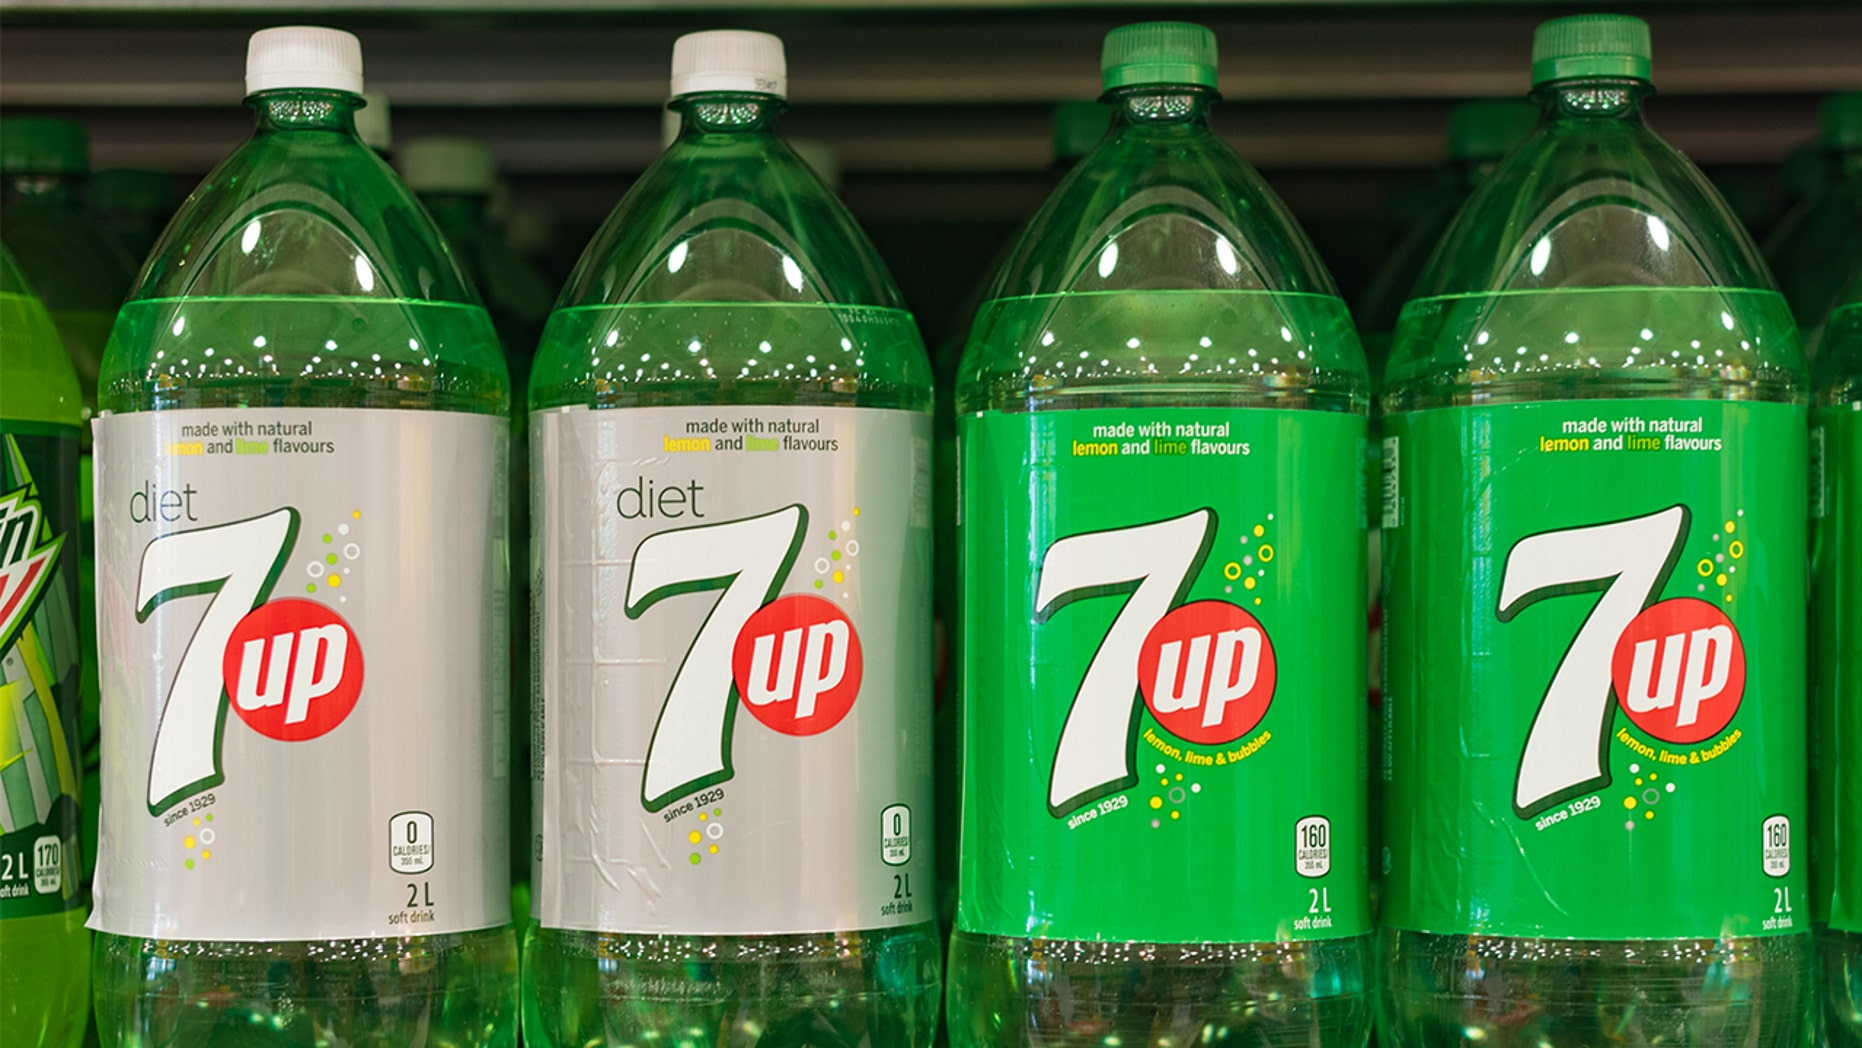 7up prueba de diabetes gratis